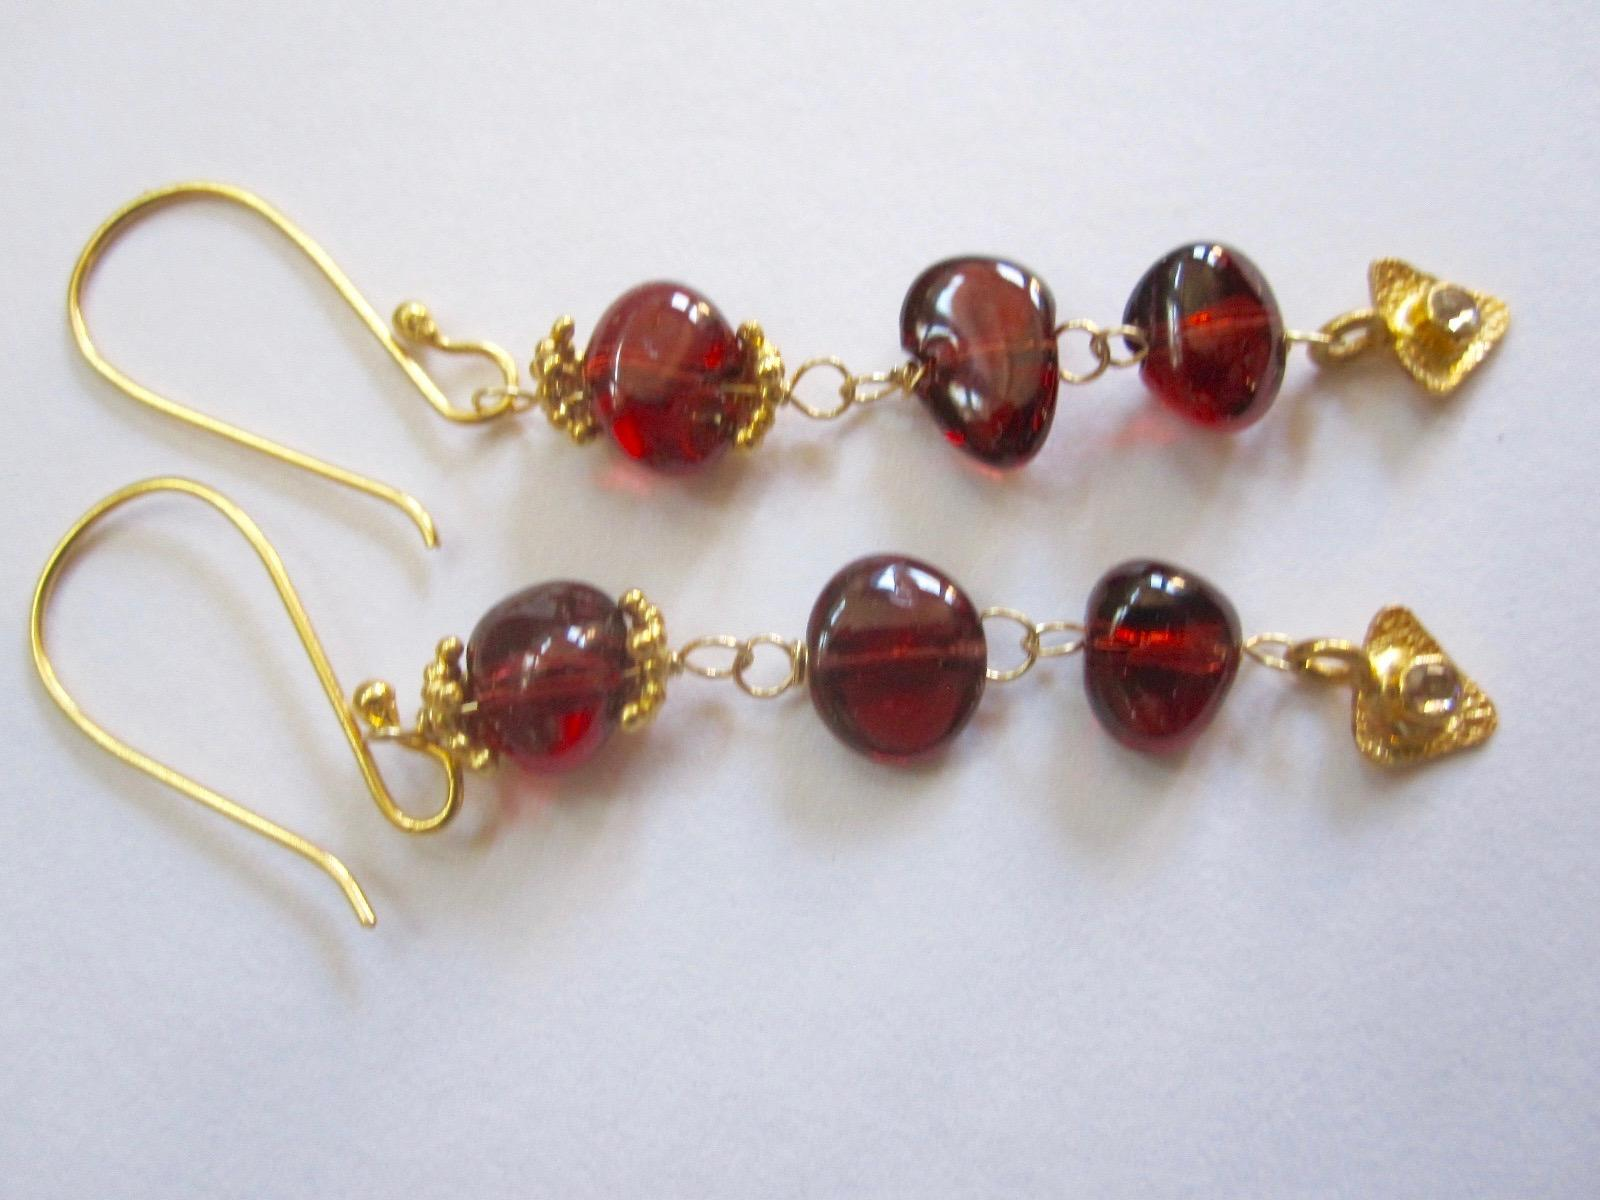 18K Solid Gold~ AAA Pyrope Red Garnet & Diamond Earrings~ Only one pair! NEW!! 2""